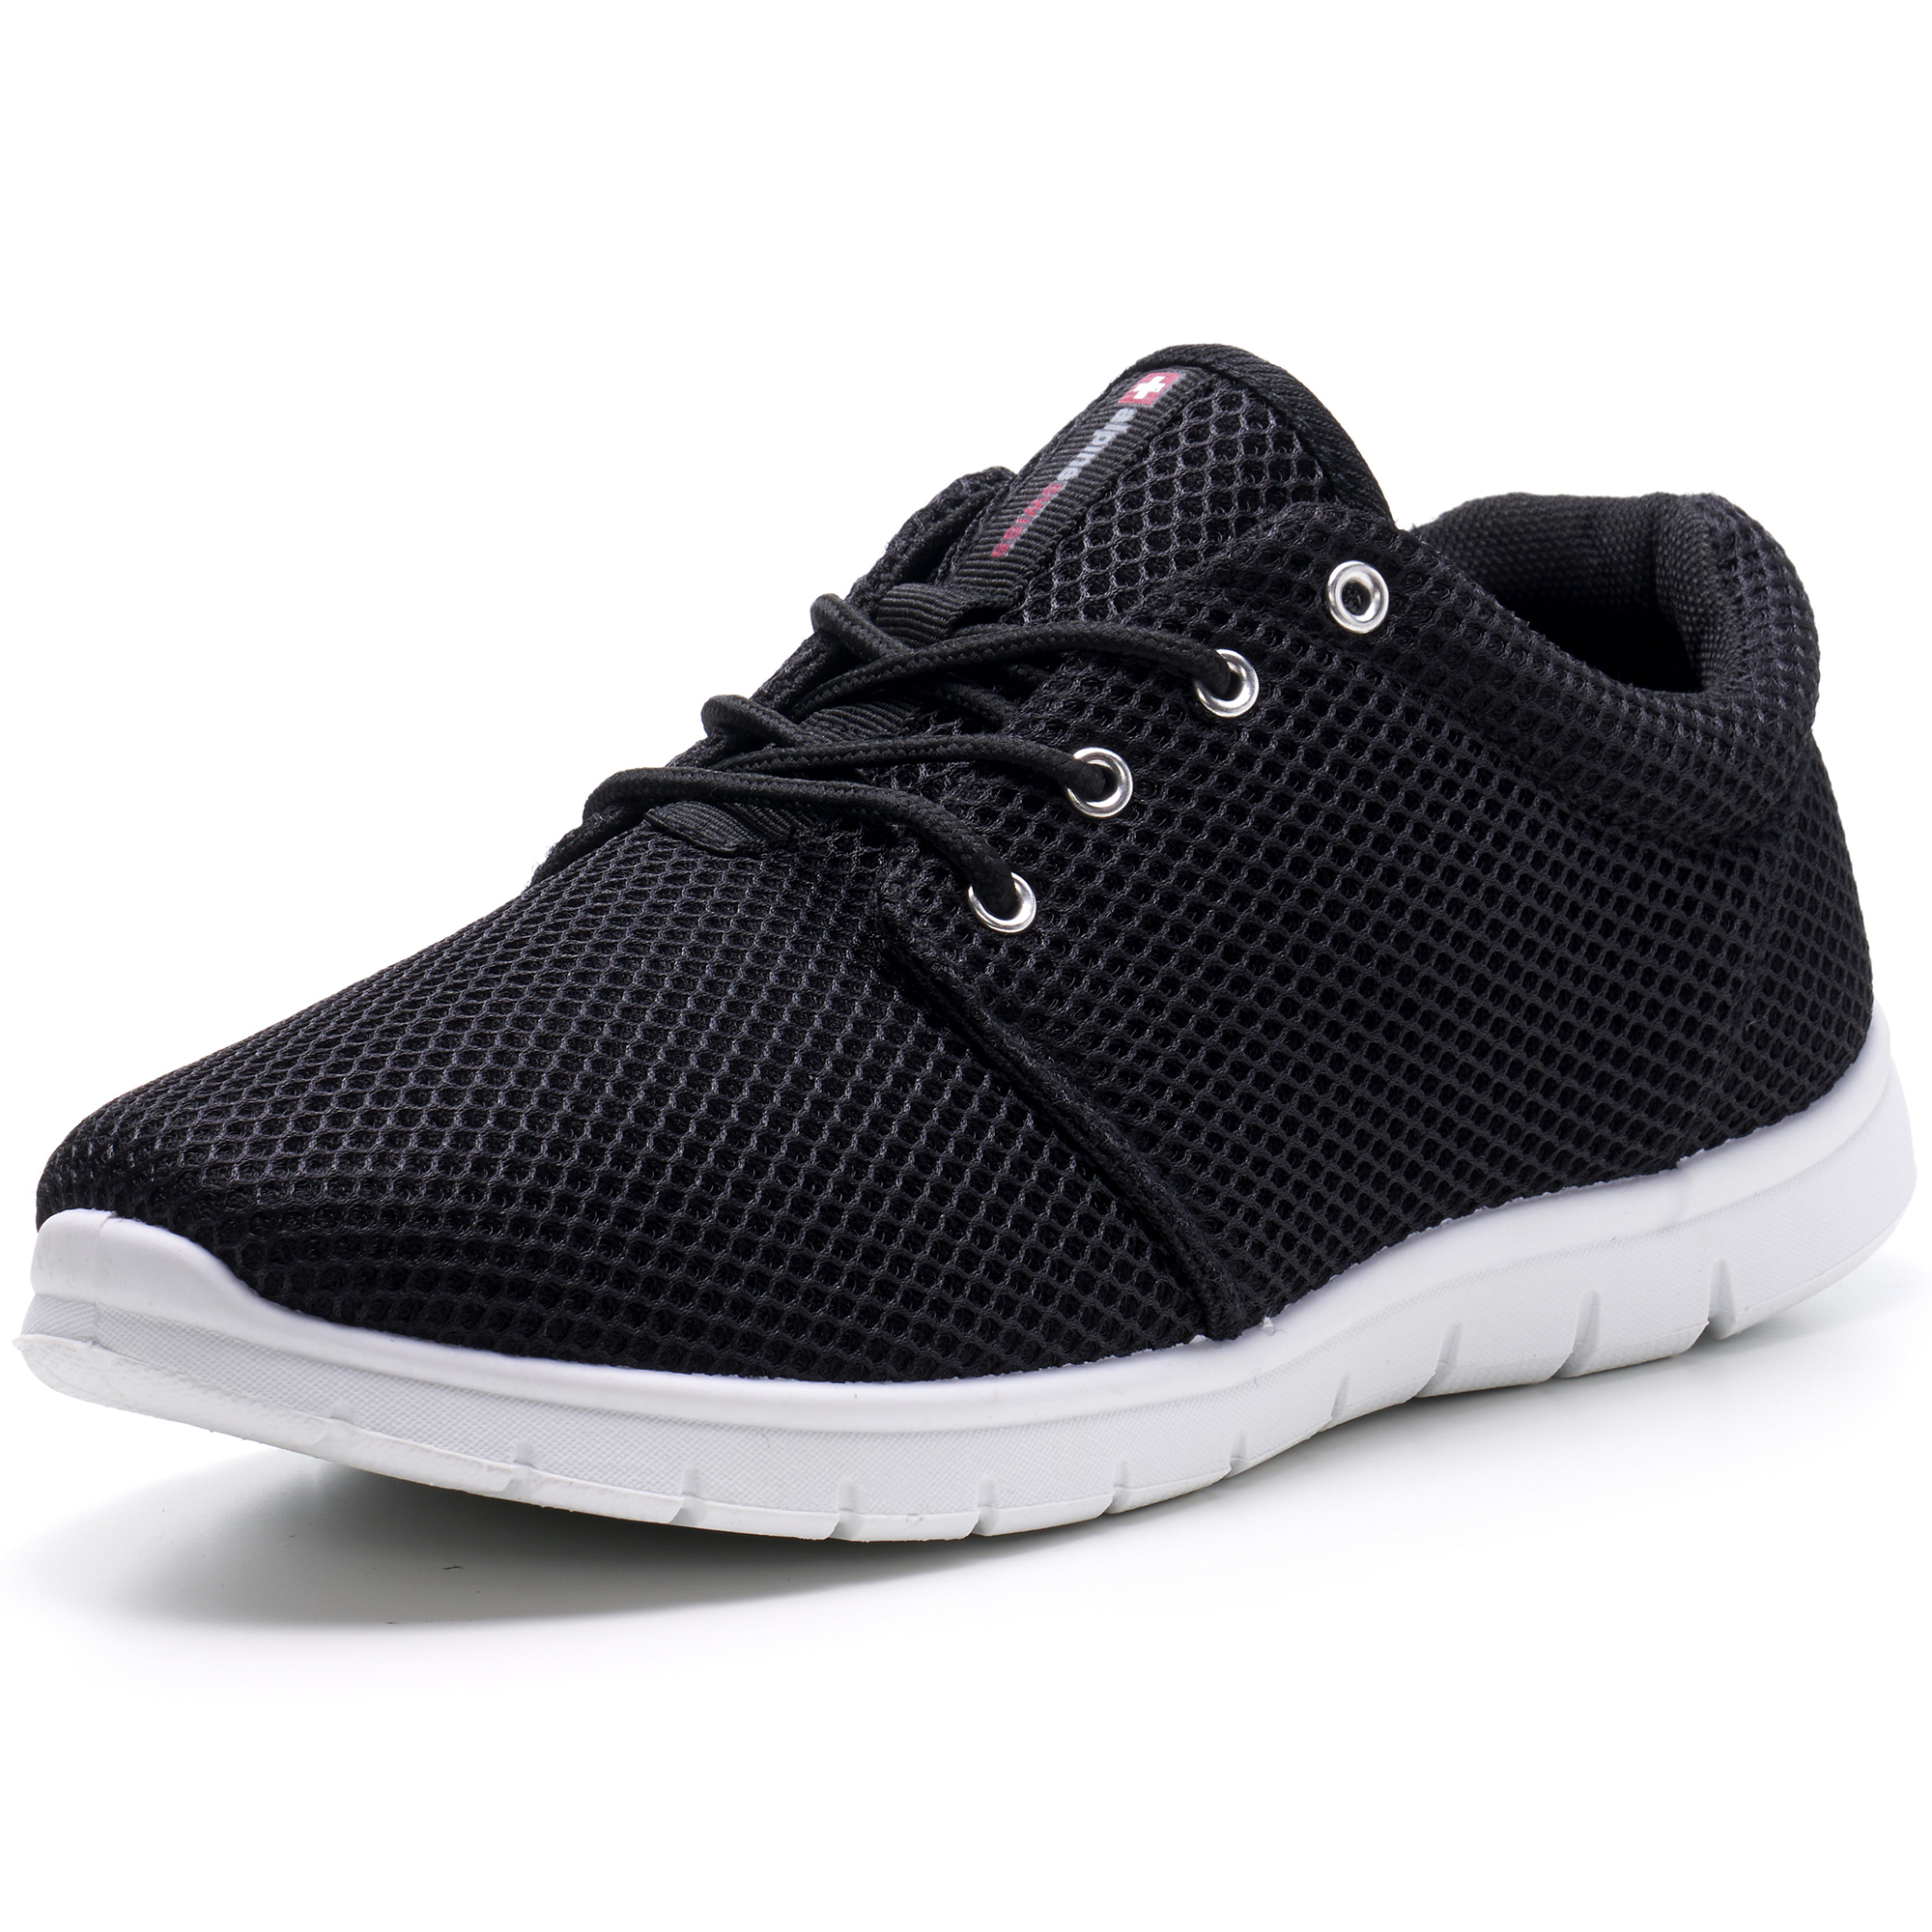 FUNNY AVOID NEGATIVITY Lightweight Breathable Casual Sports Shoes Fashion Sneakers Shoes